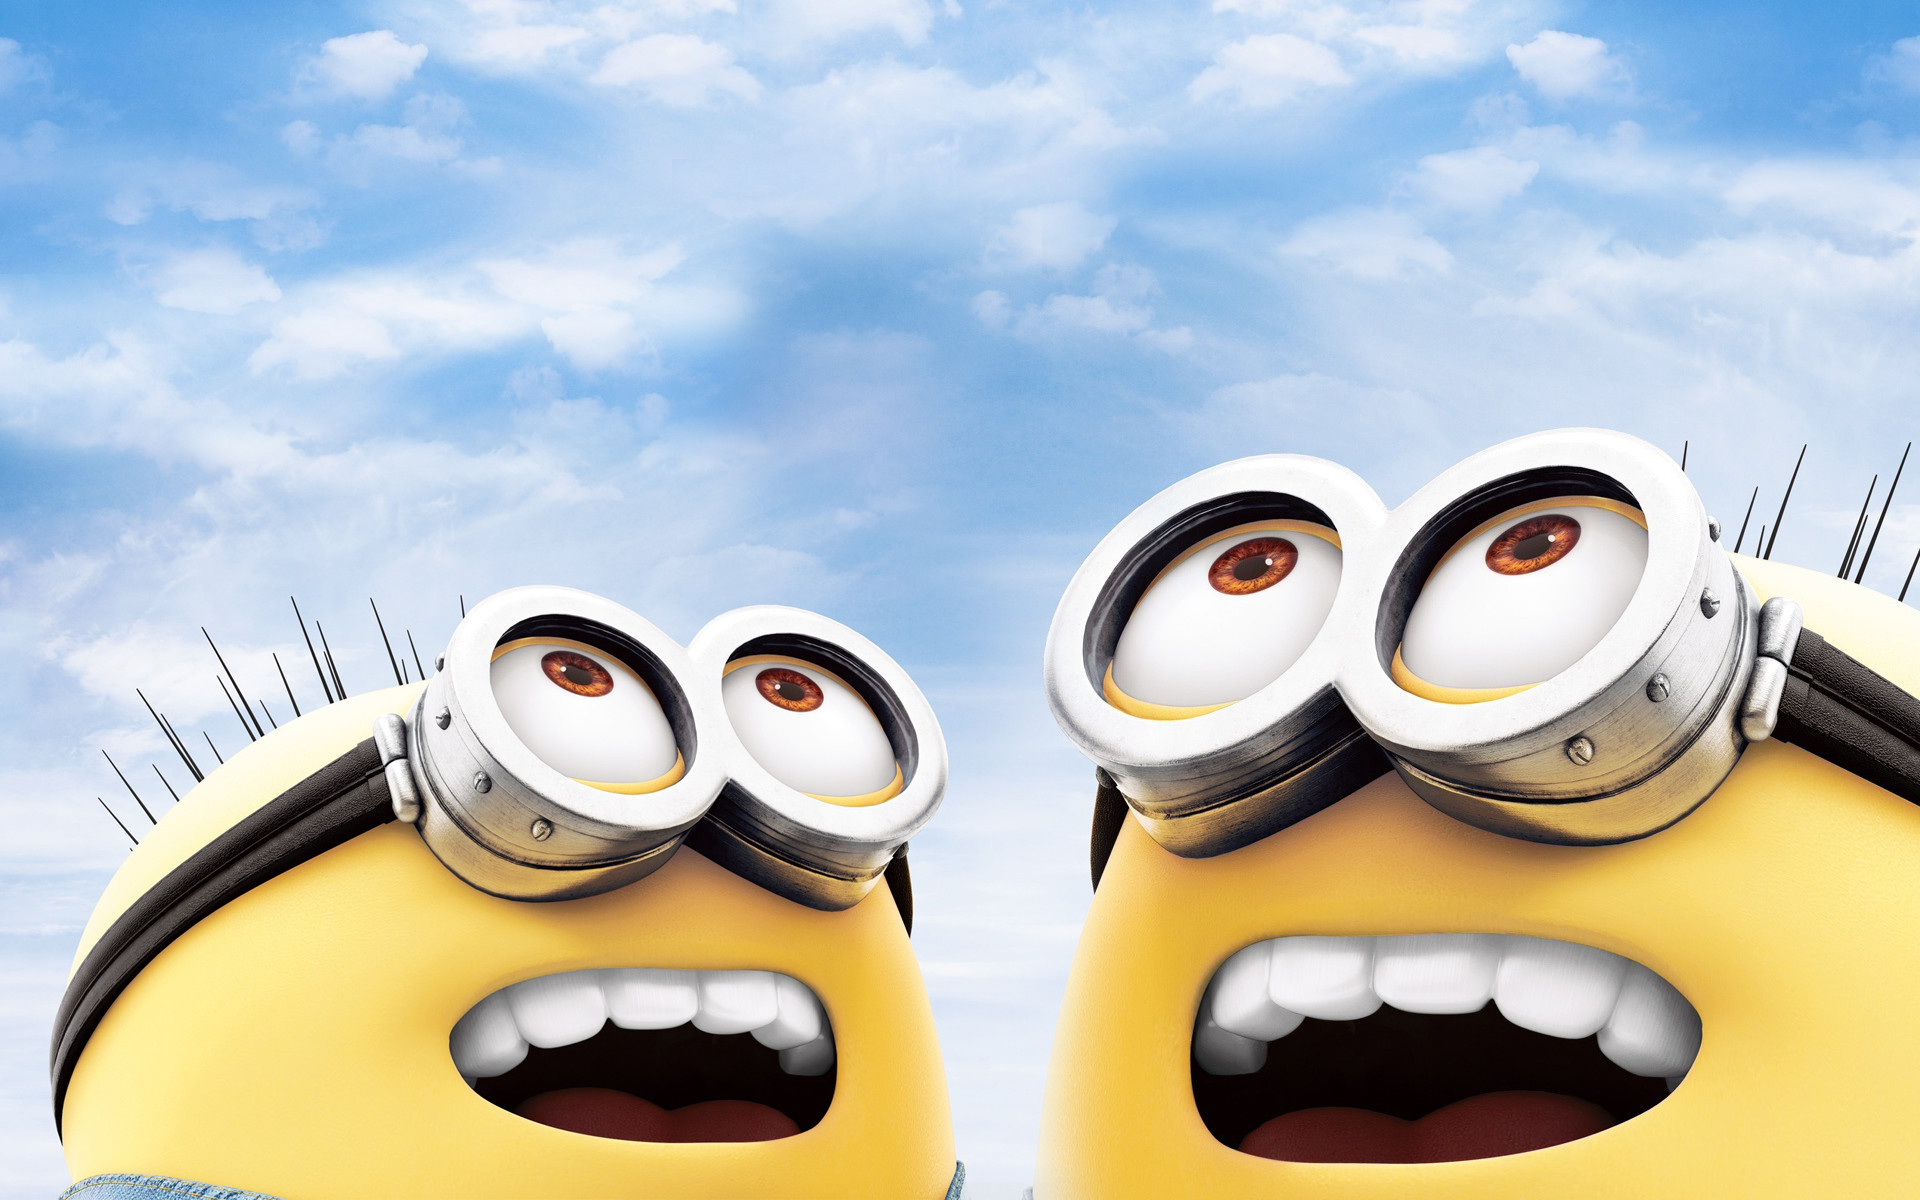 Res: 1920x1200, Cute Minion Blackgrounds Pictures Download.